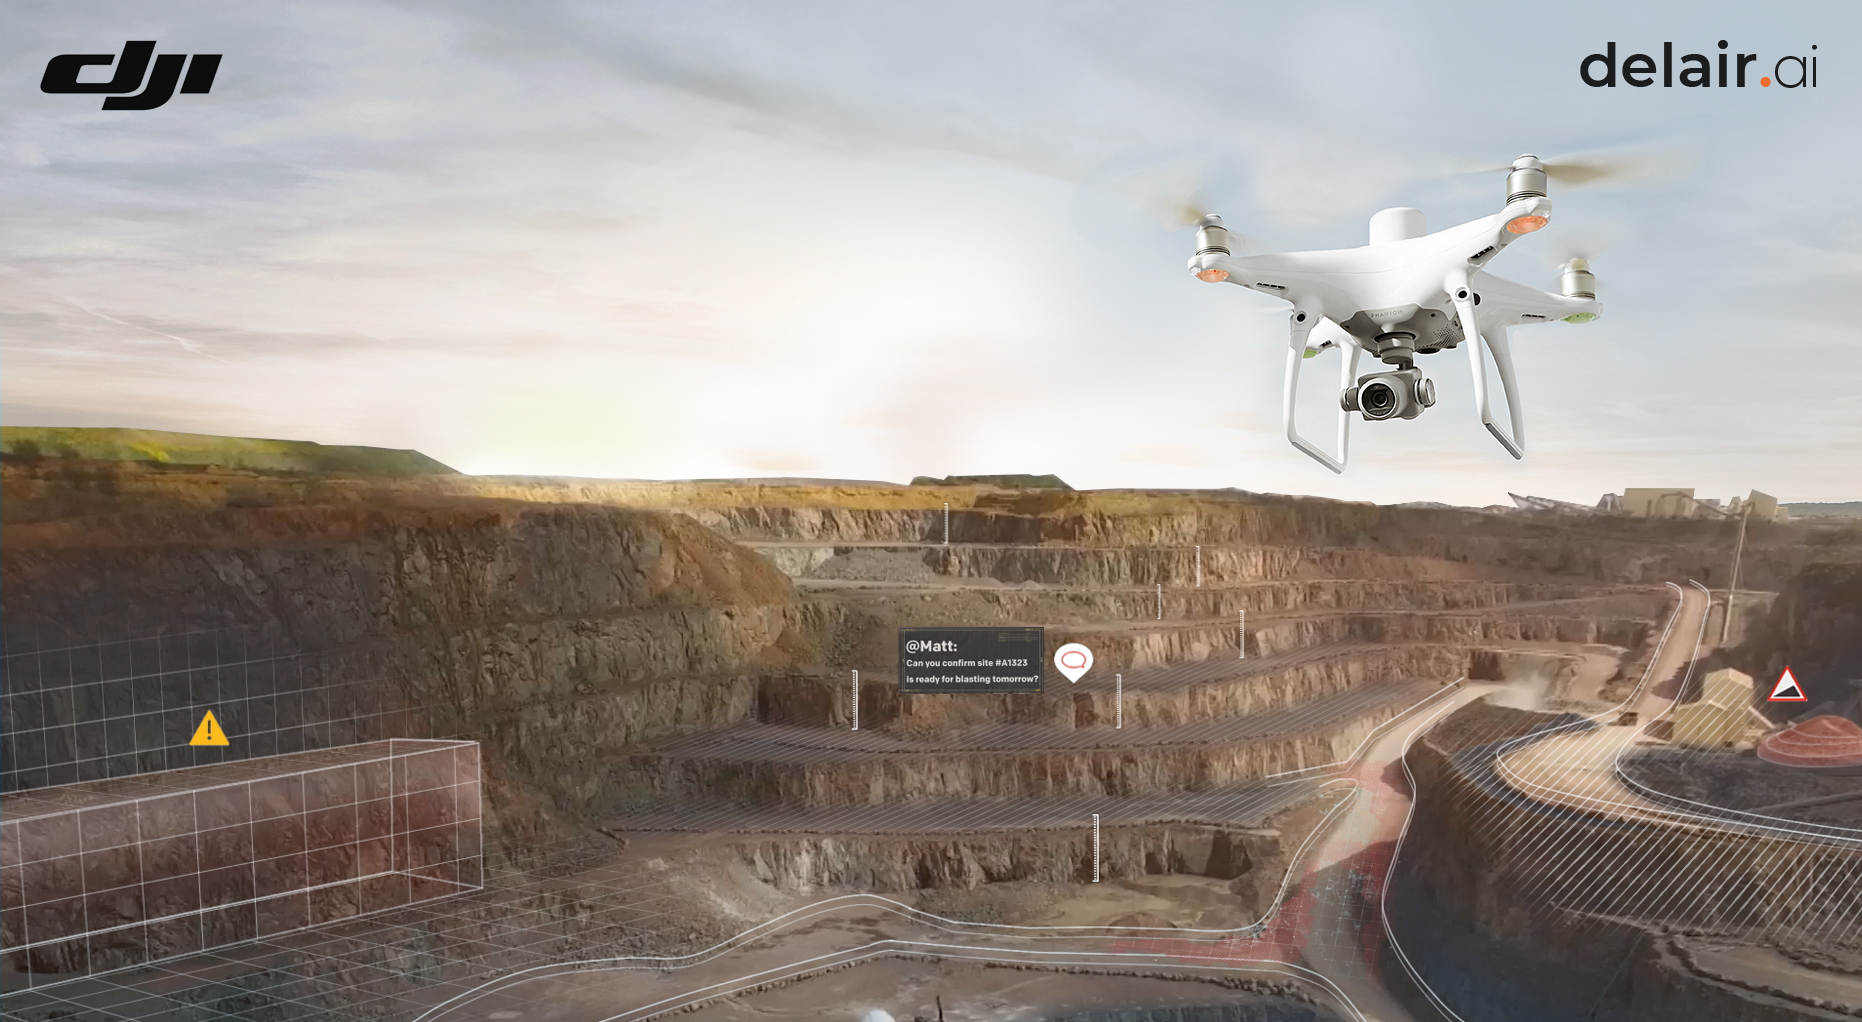 DJI and Delair partner to improve efficiency of commercial